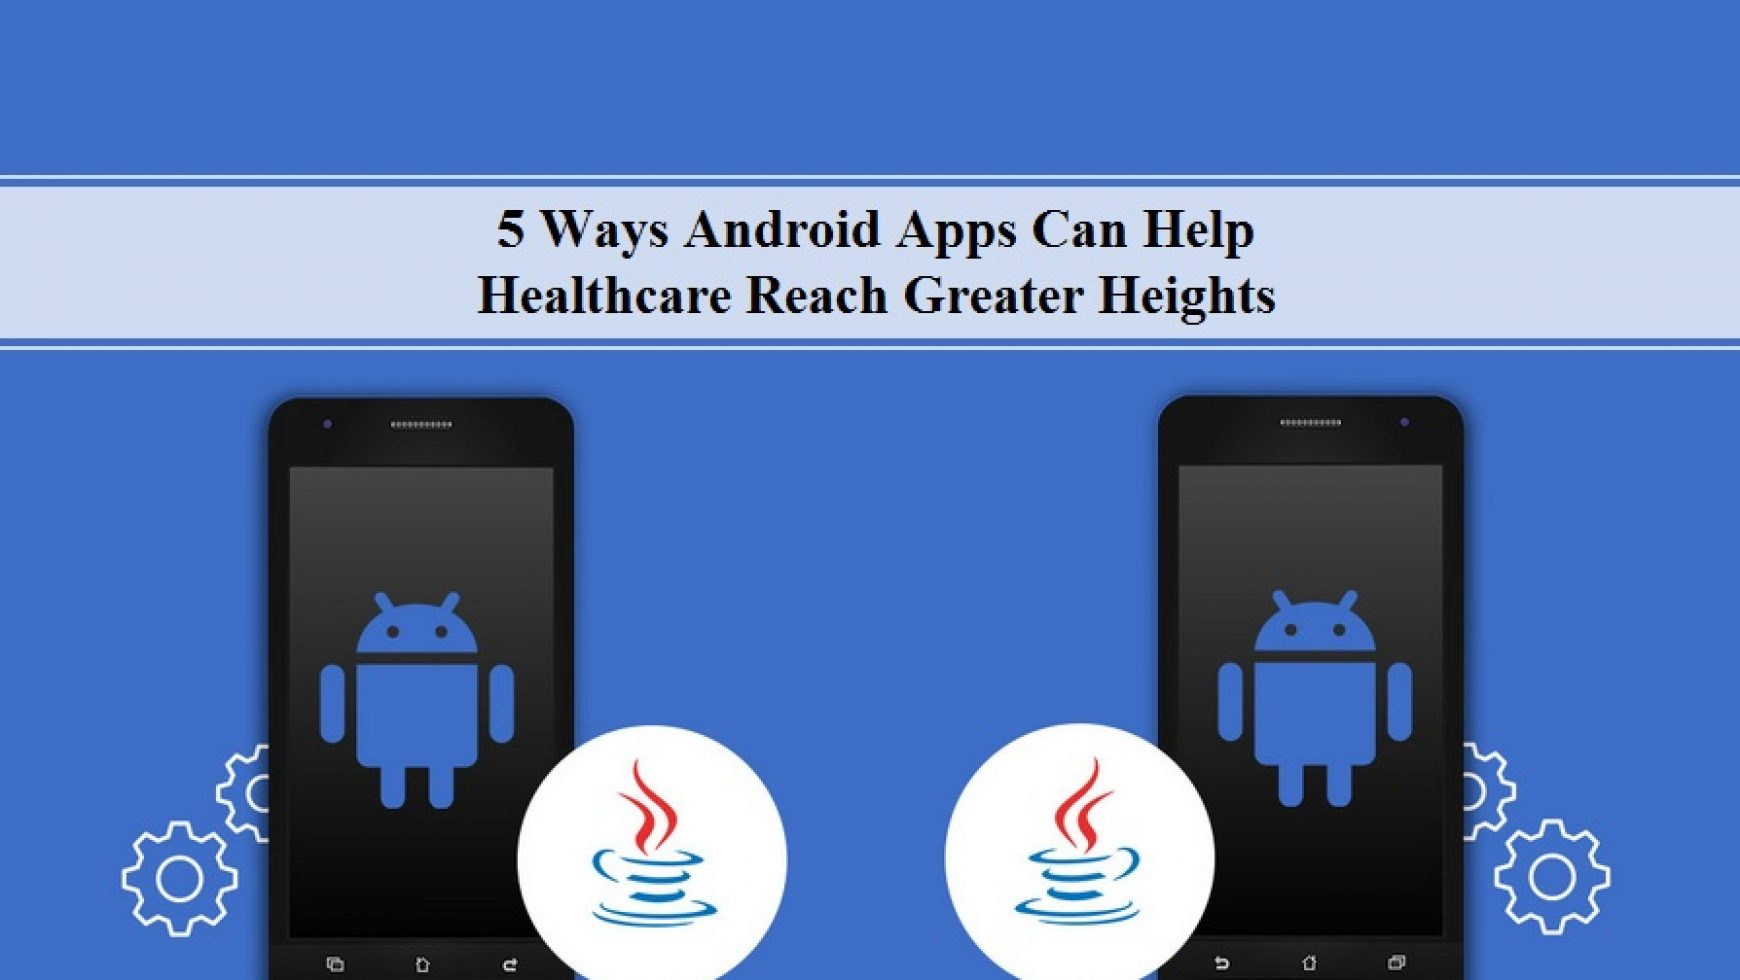 5 Ways Android Apps Can Help Healthcare Reach Greater Heights